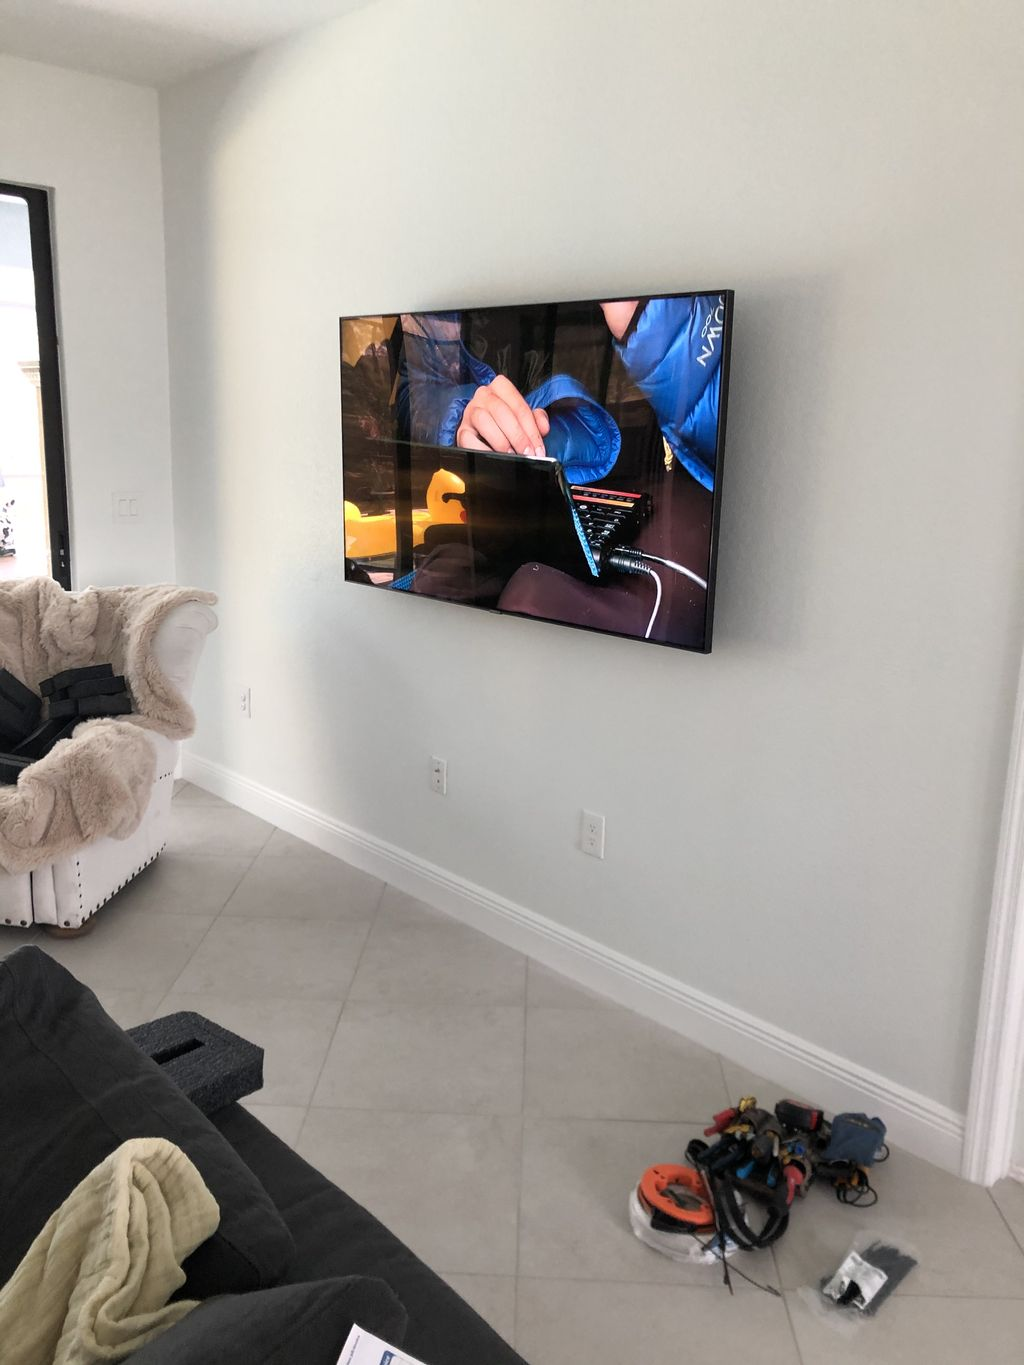 Articulating Mount with Samsung Connect Box